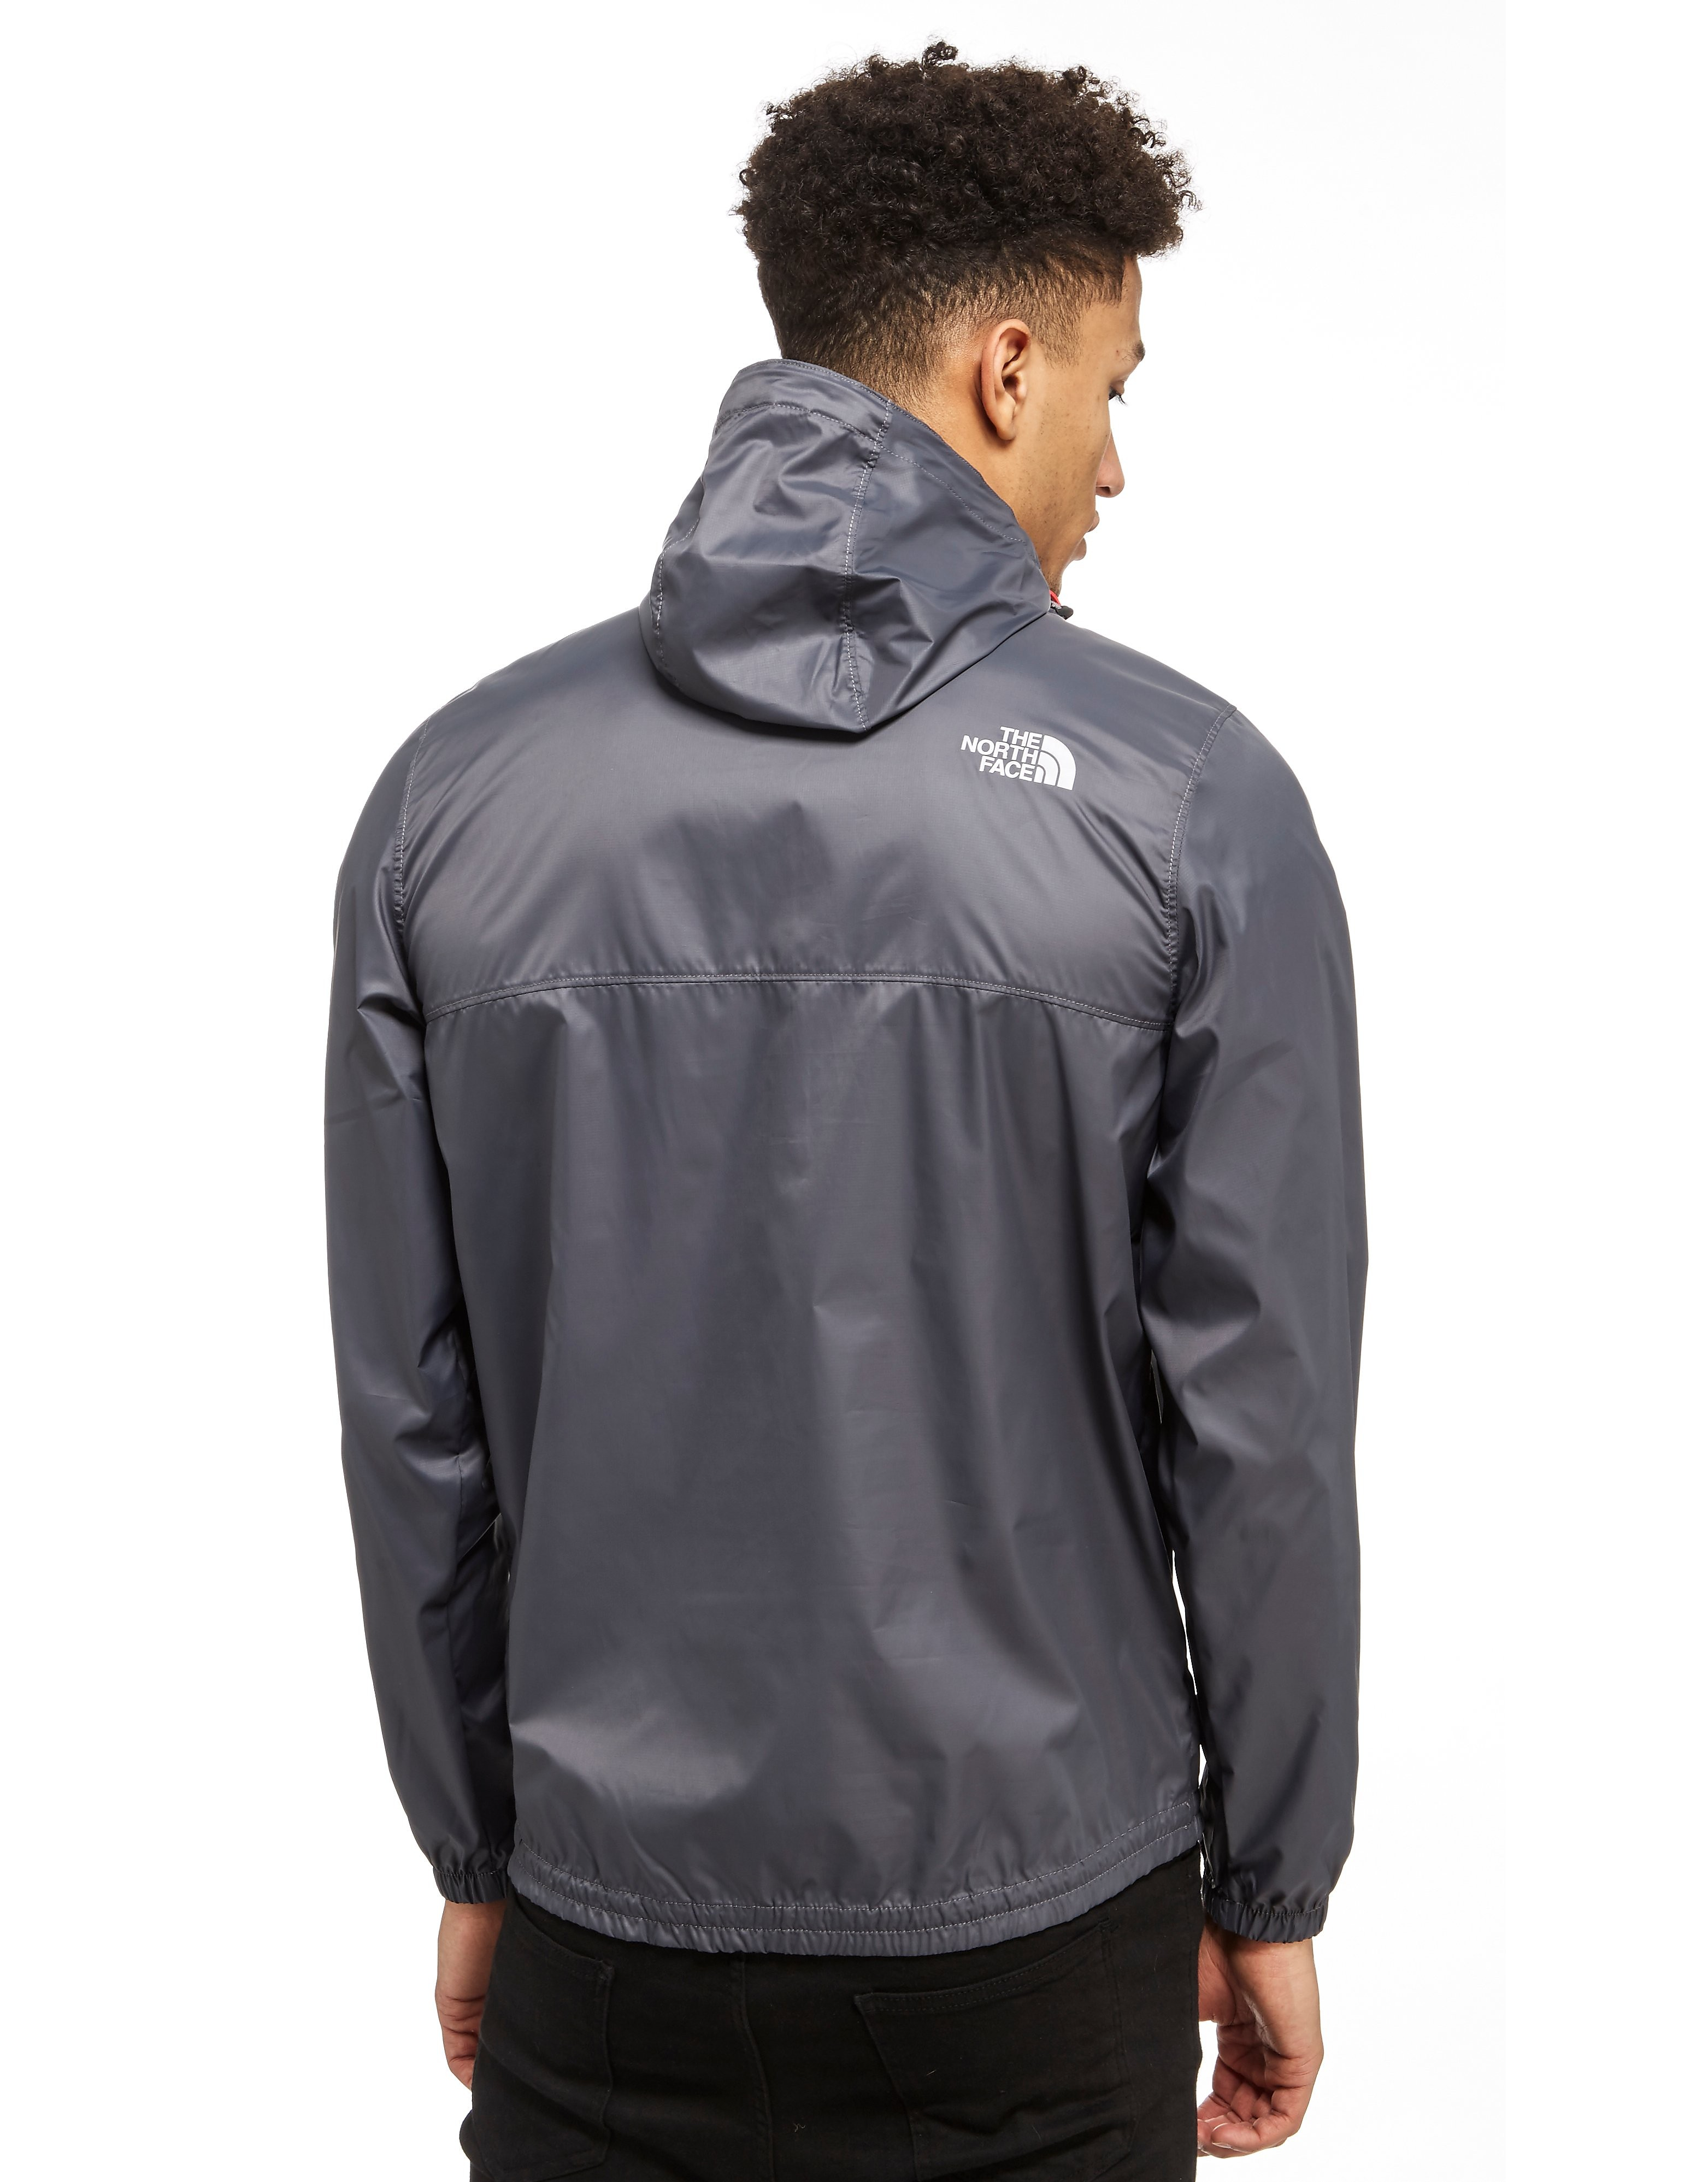 The North Face 1/4 Zip Flyweight Jacket